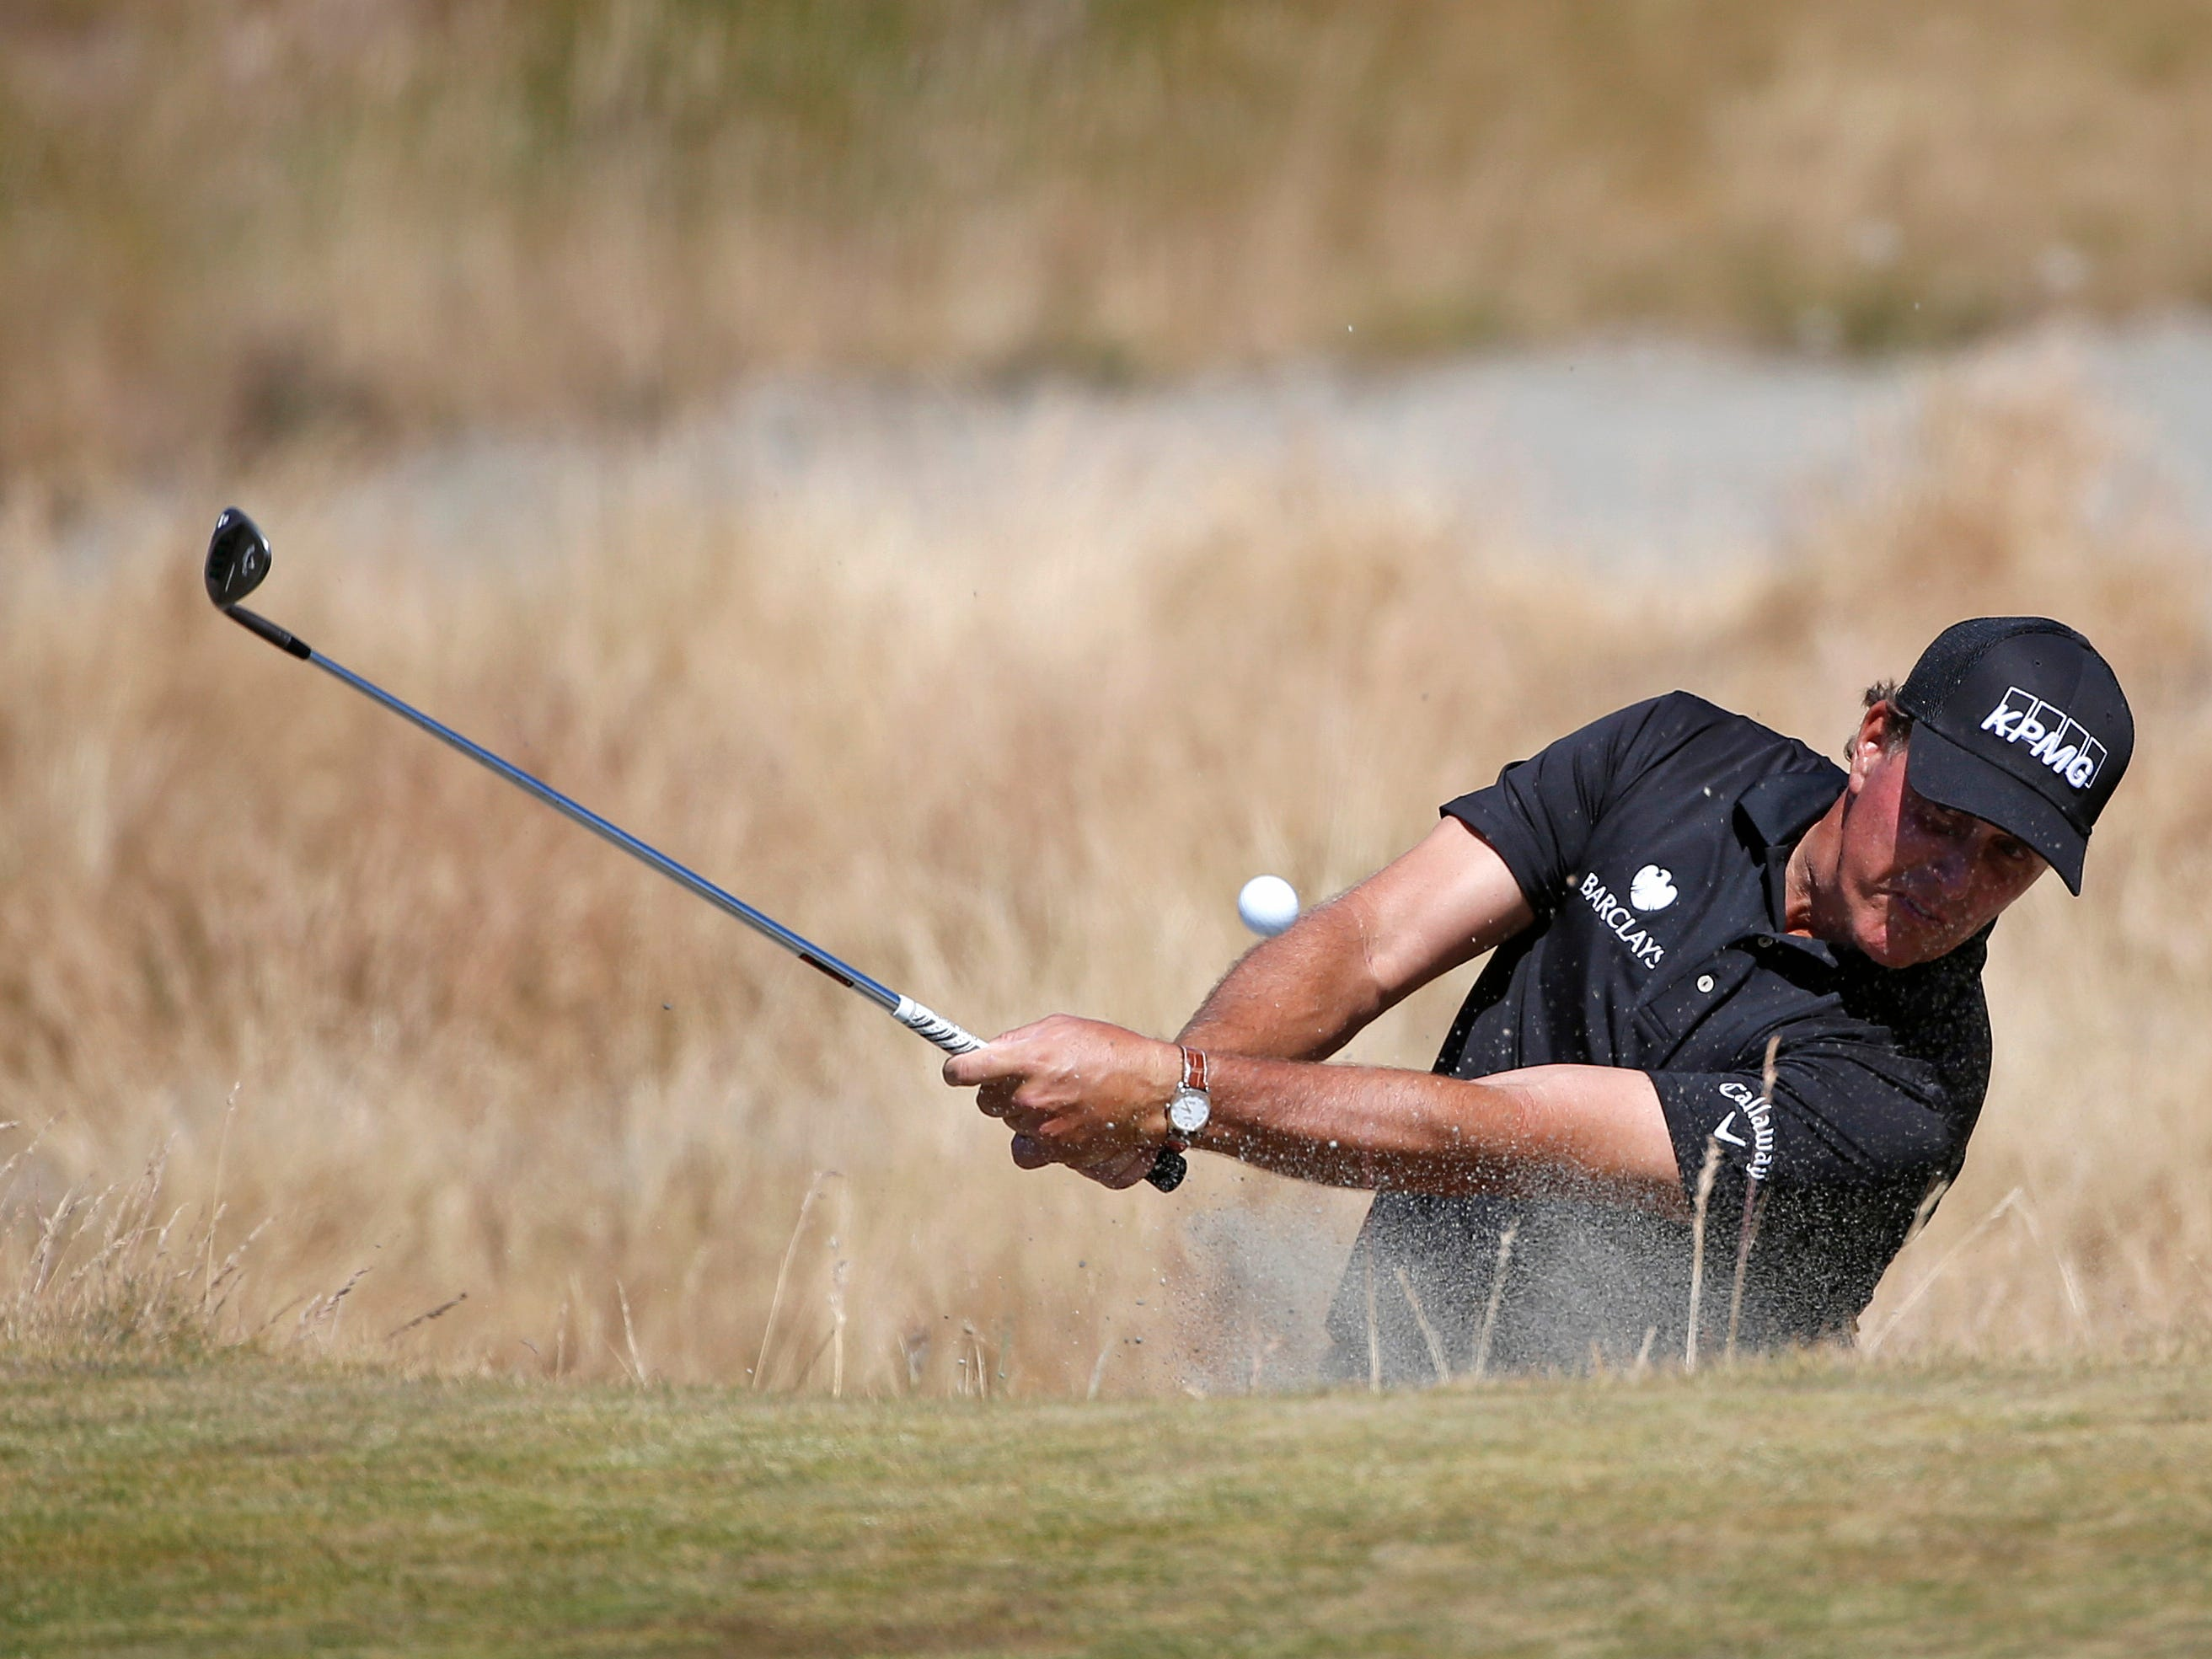 Phil Mickelson hits out of the bunker on the 15th hole during the second round of the U.S. Open golf tournament at Chambers Bay on Friday, June 19, 2015 in University Place, Wash. (AP Photo/Lenny Ignelzi)